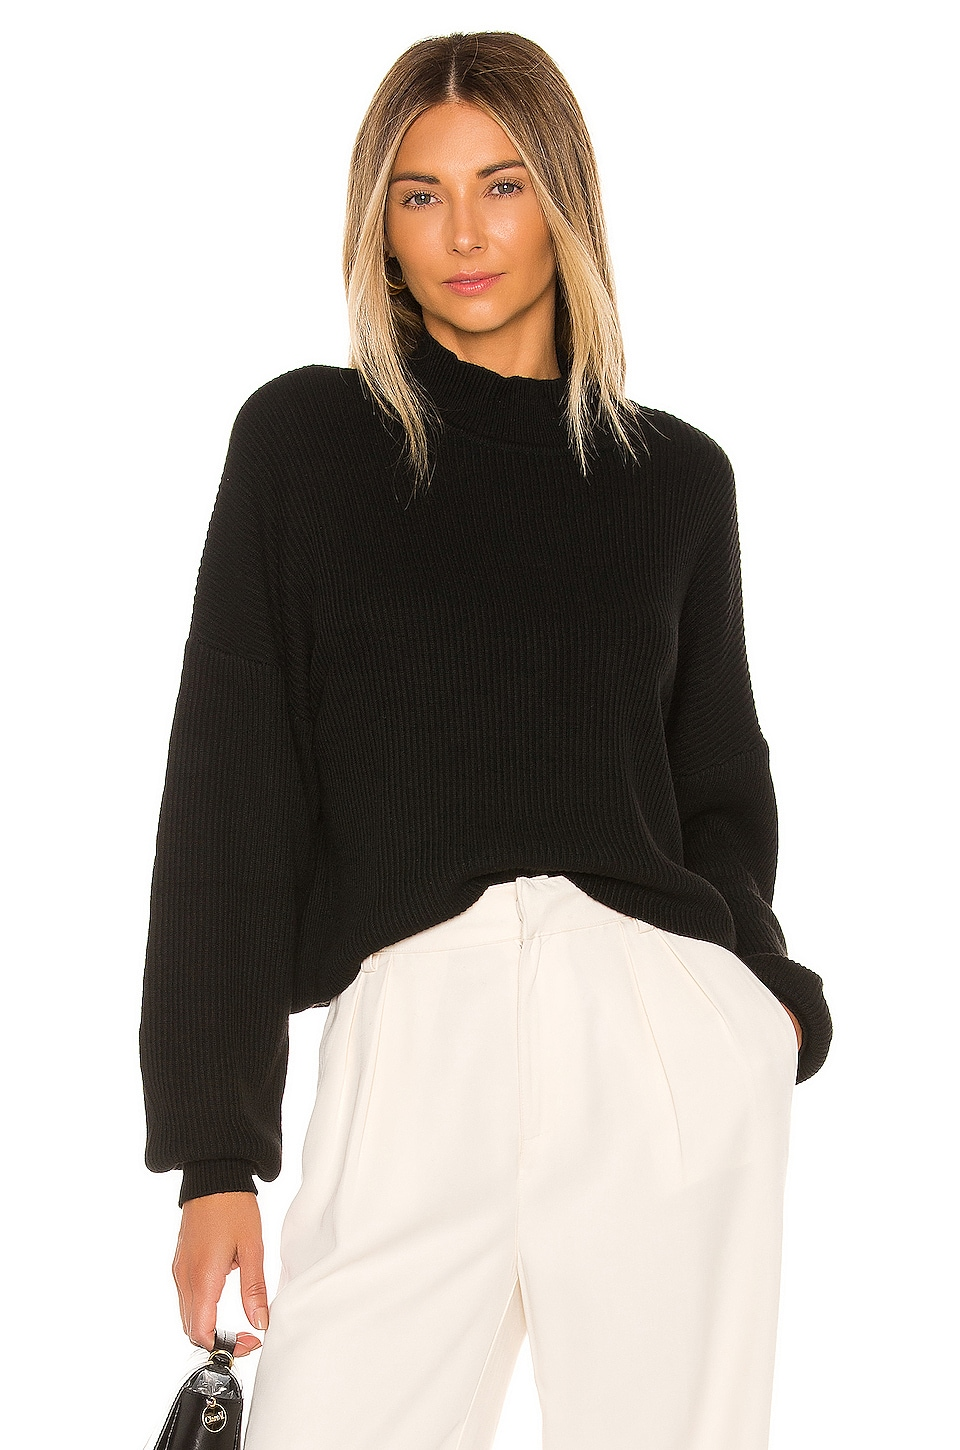 L'Academie Dana Sweater in Black